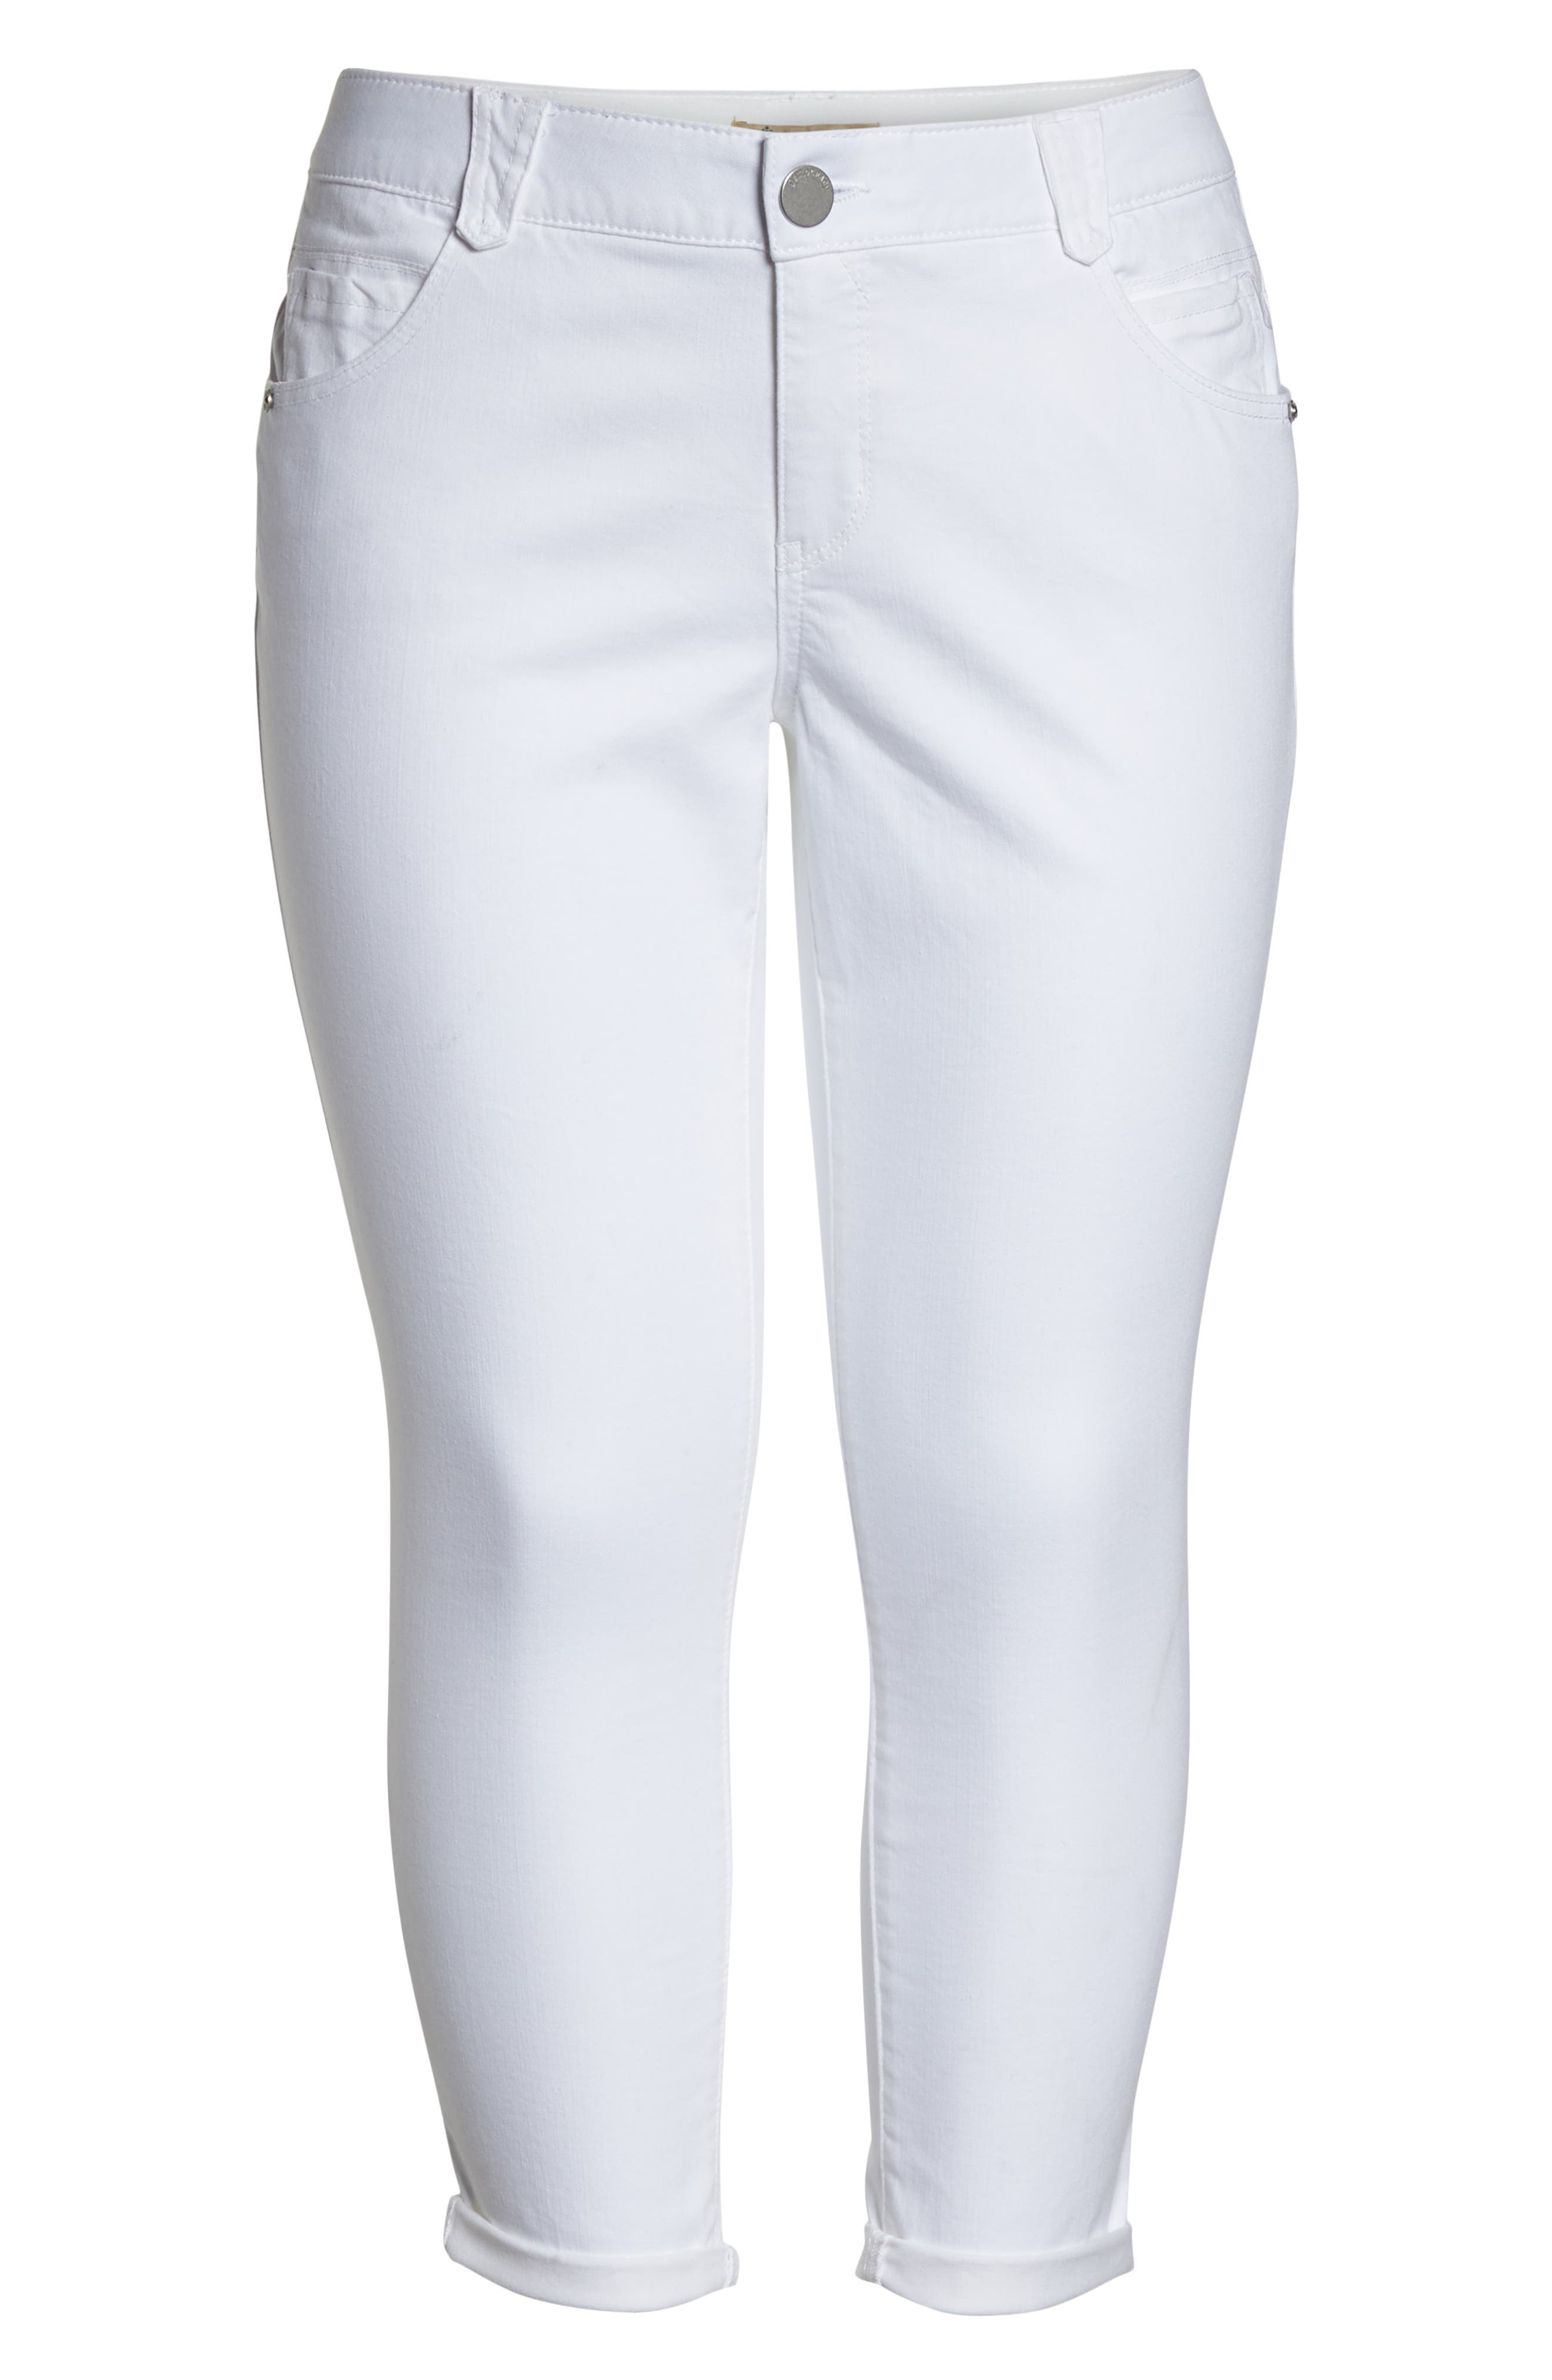 Ab-Solution Ankle Jeans,                             Alternate thumbnail 6, color,                             OPTIC WHITE